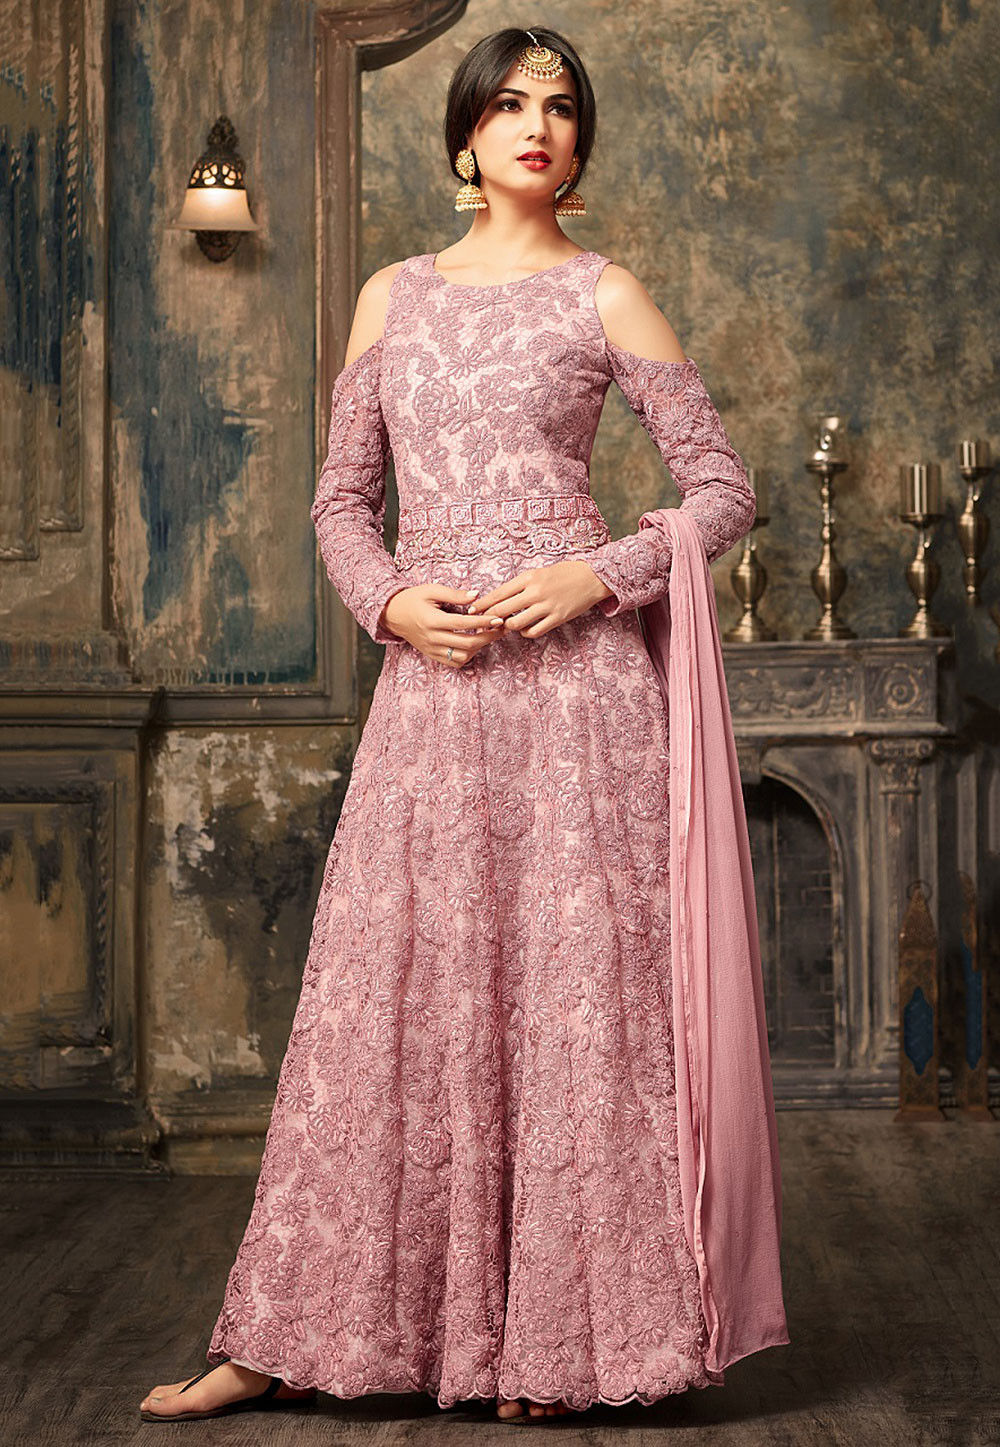 efb7f0de19 ... Salwar Kameez; Embroidered Net Abaya Style Suit in Light Pink. Zoom